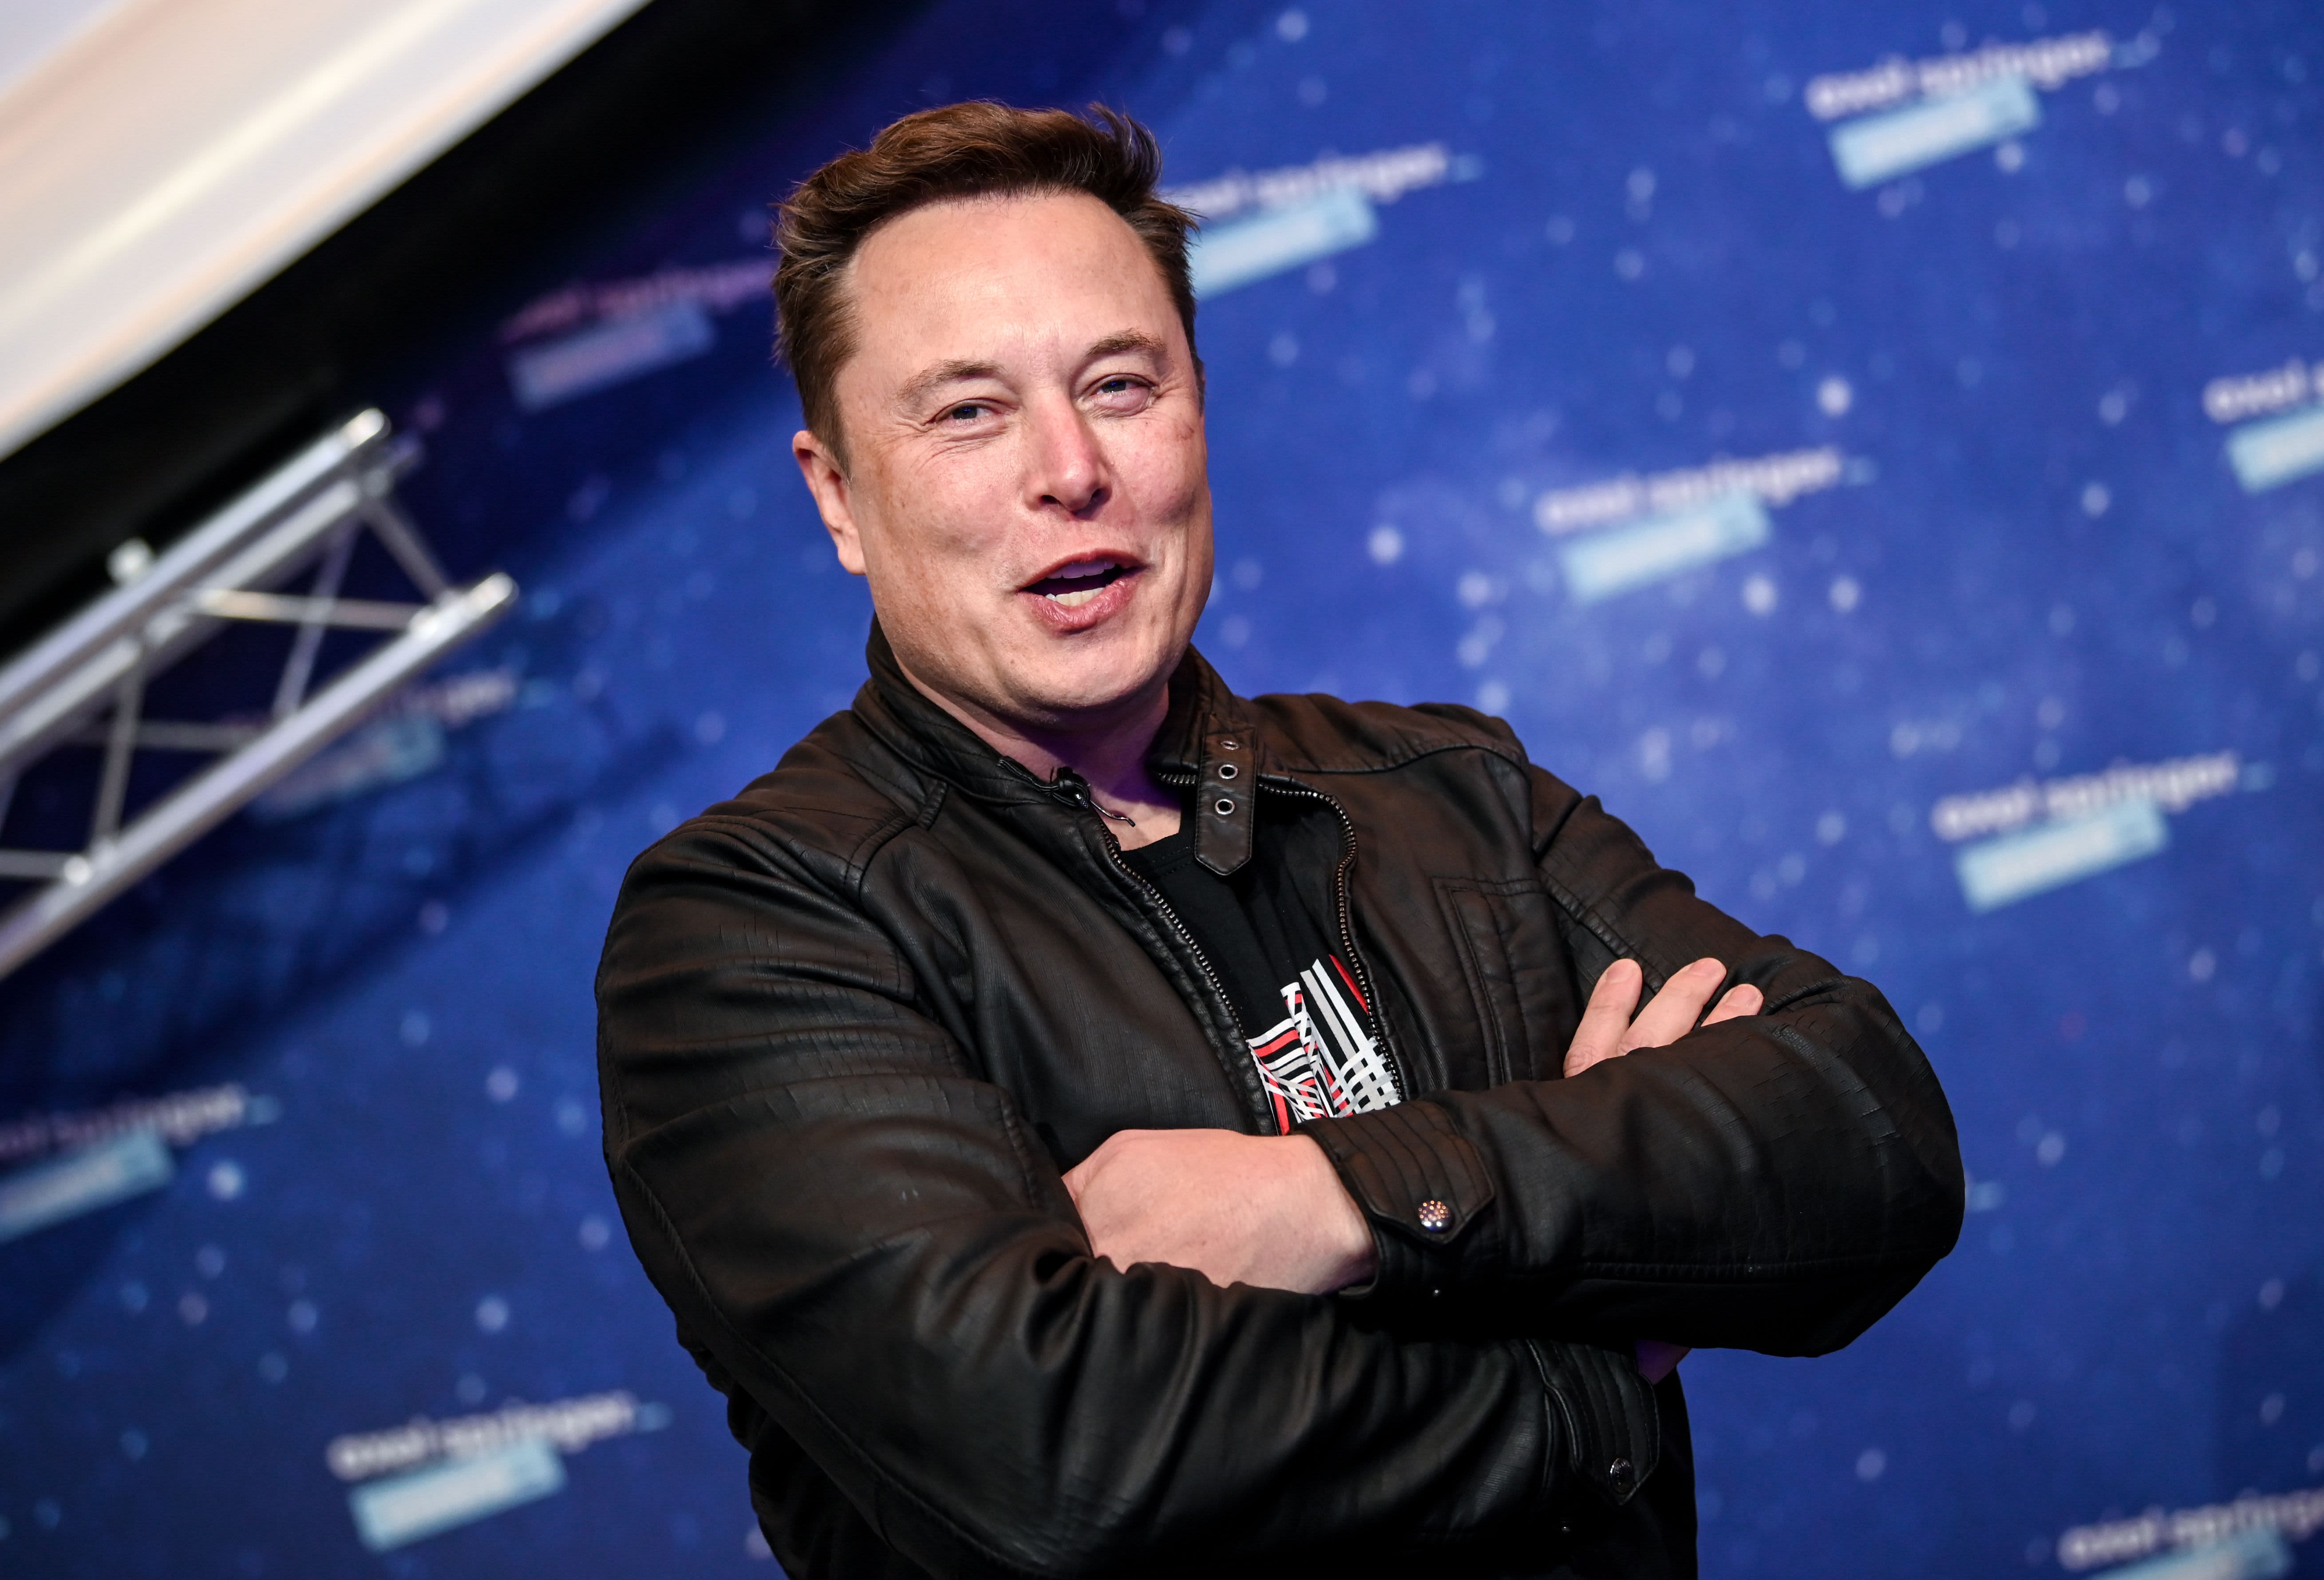 Some members of the 'Saturday Night Live' cast are confused and annoyed to have Elon Musk host show